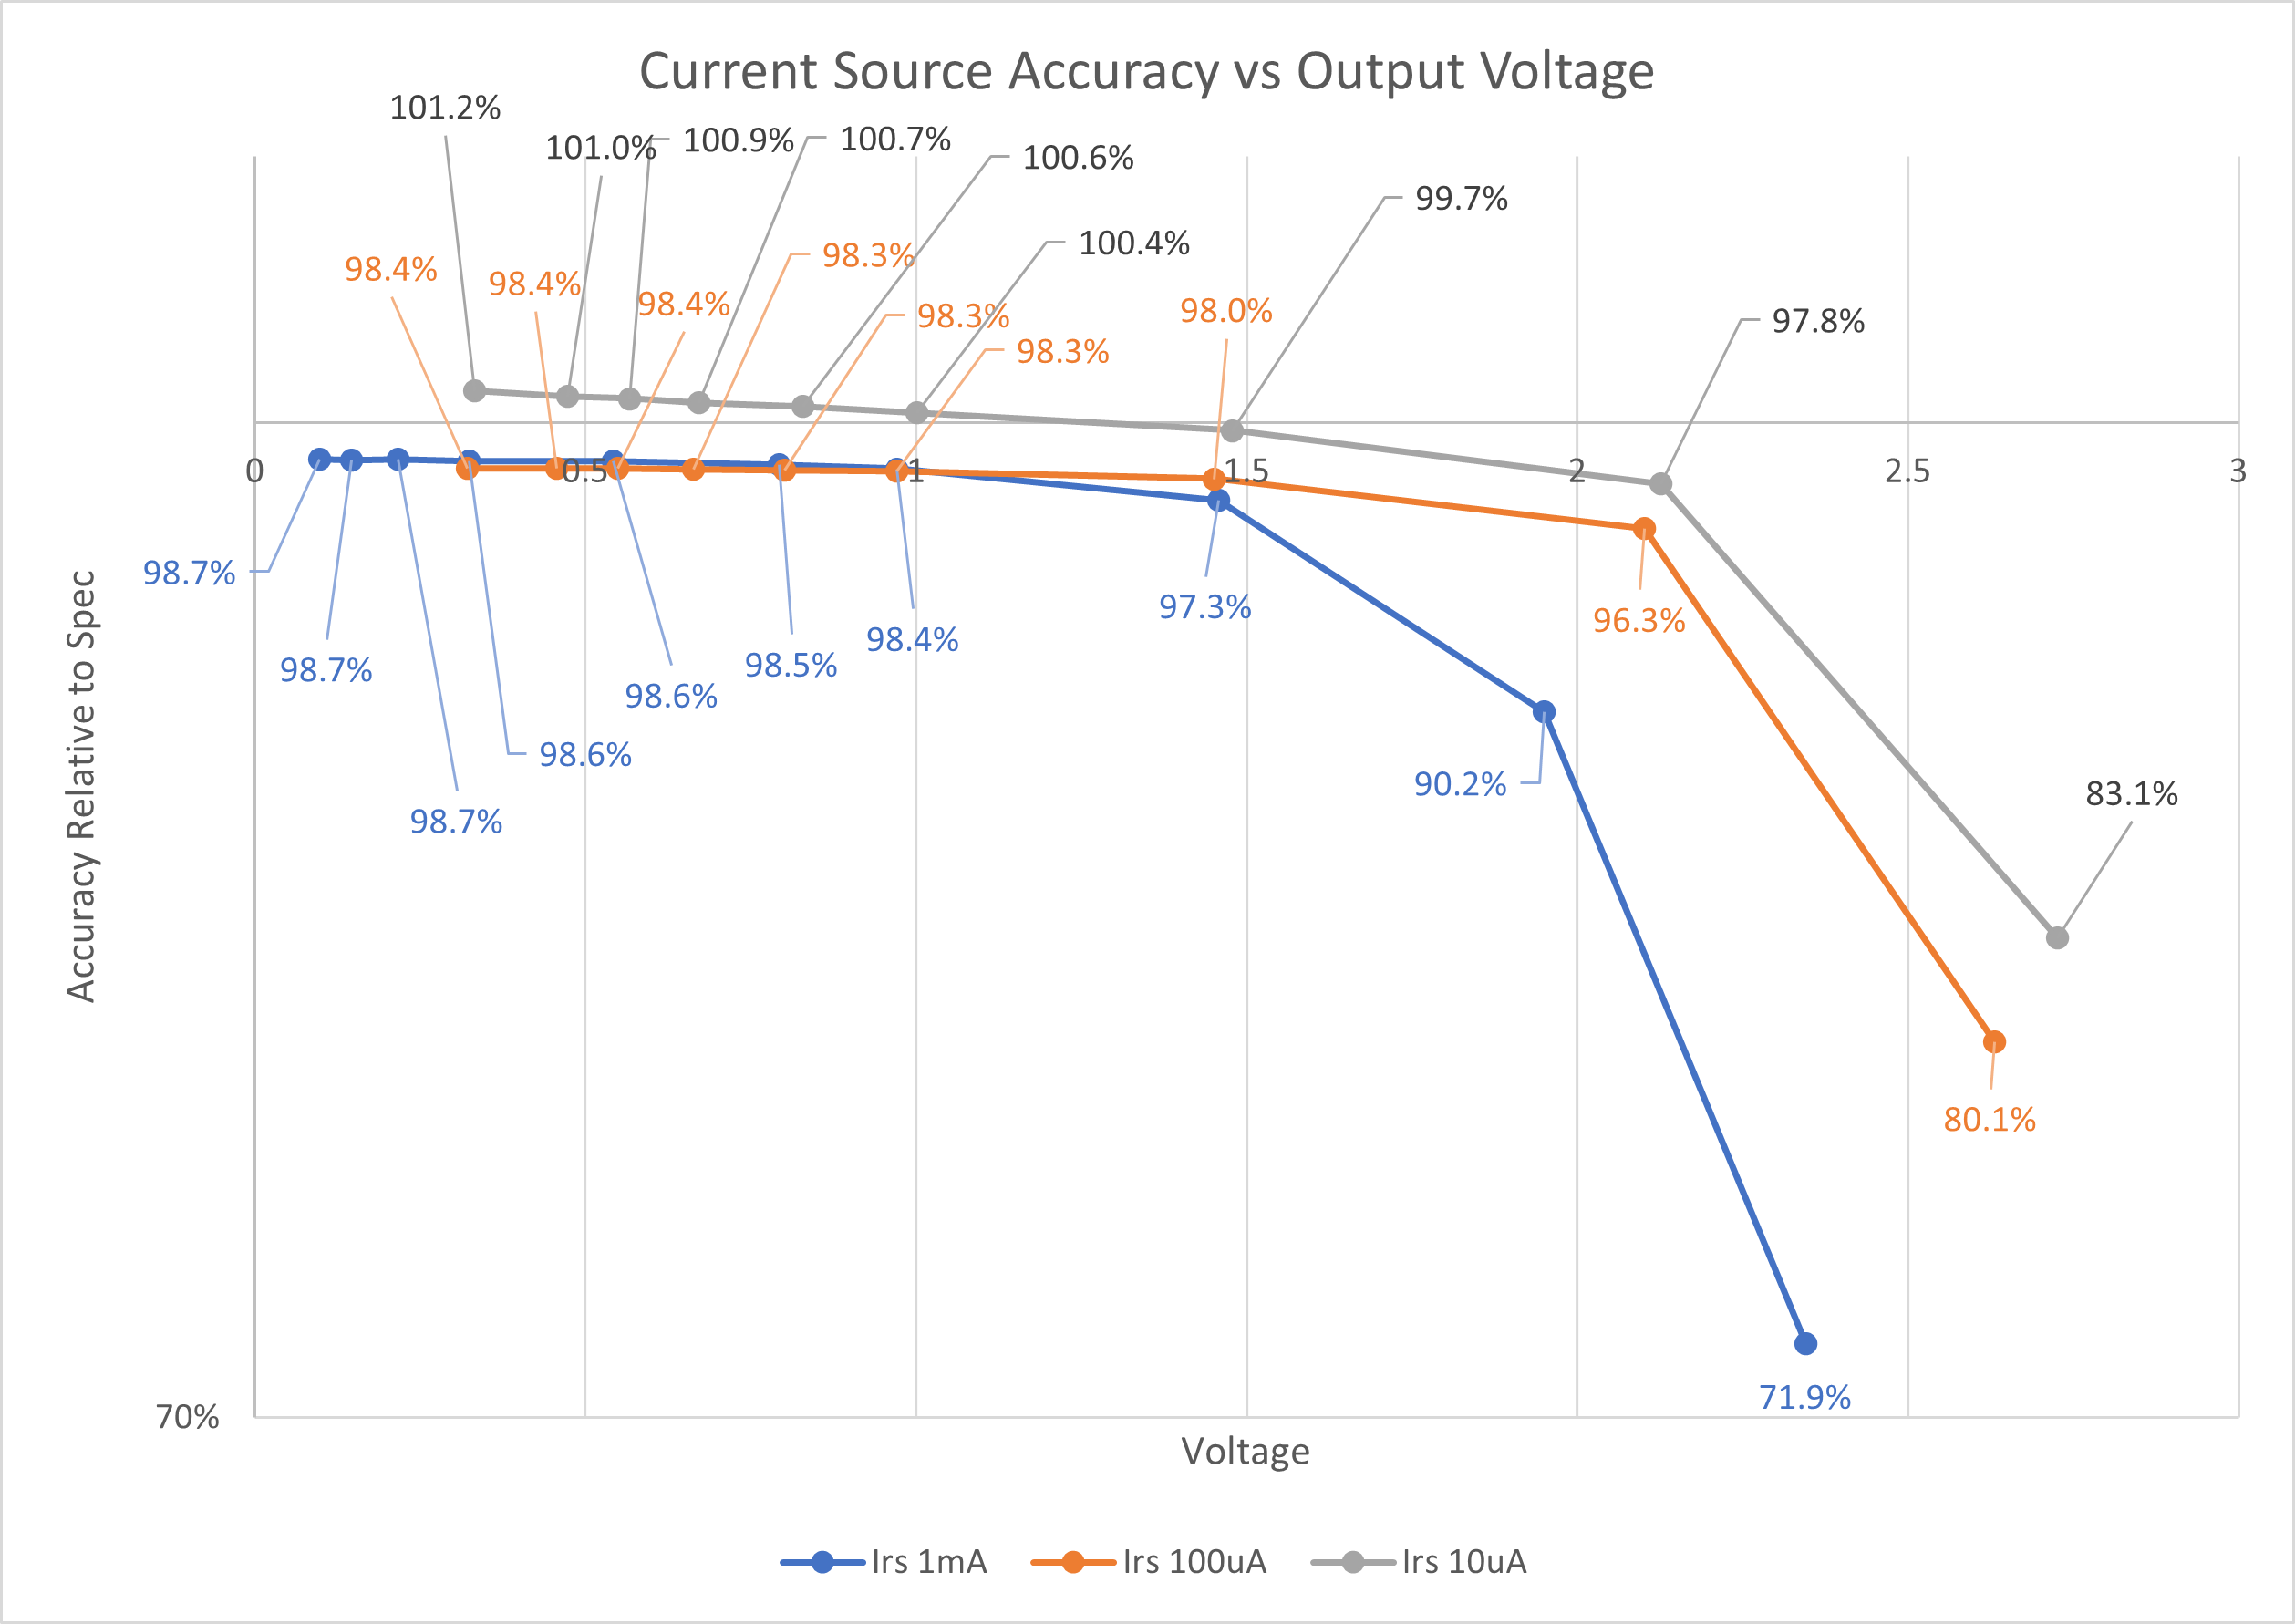 Current Source Accuracy vs Voltage